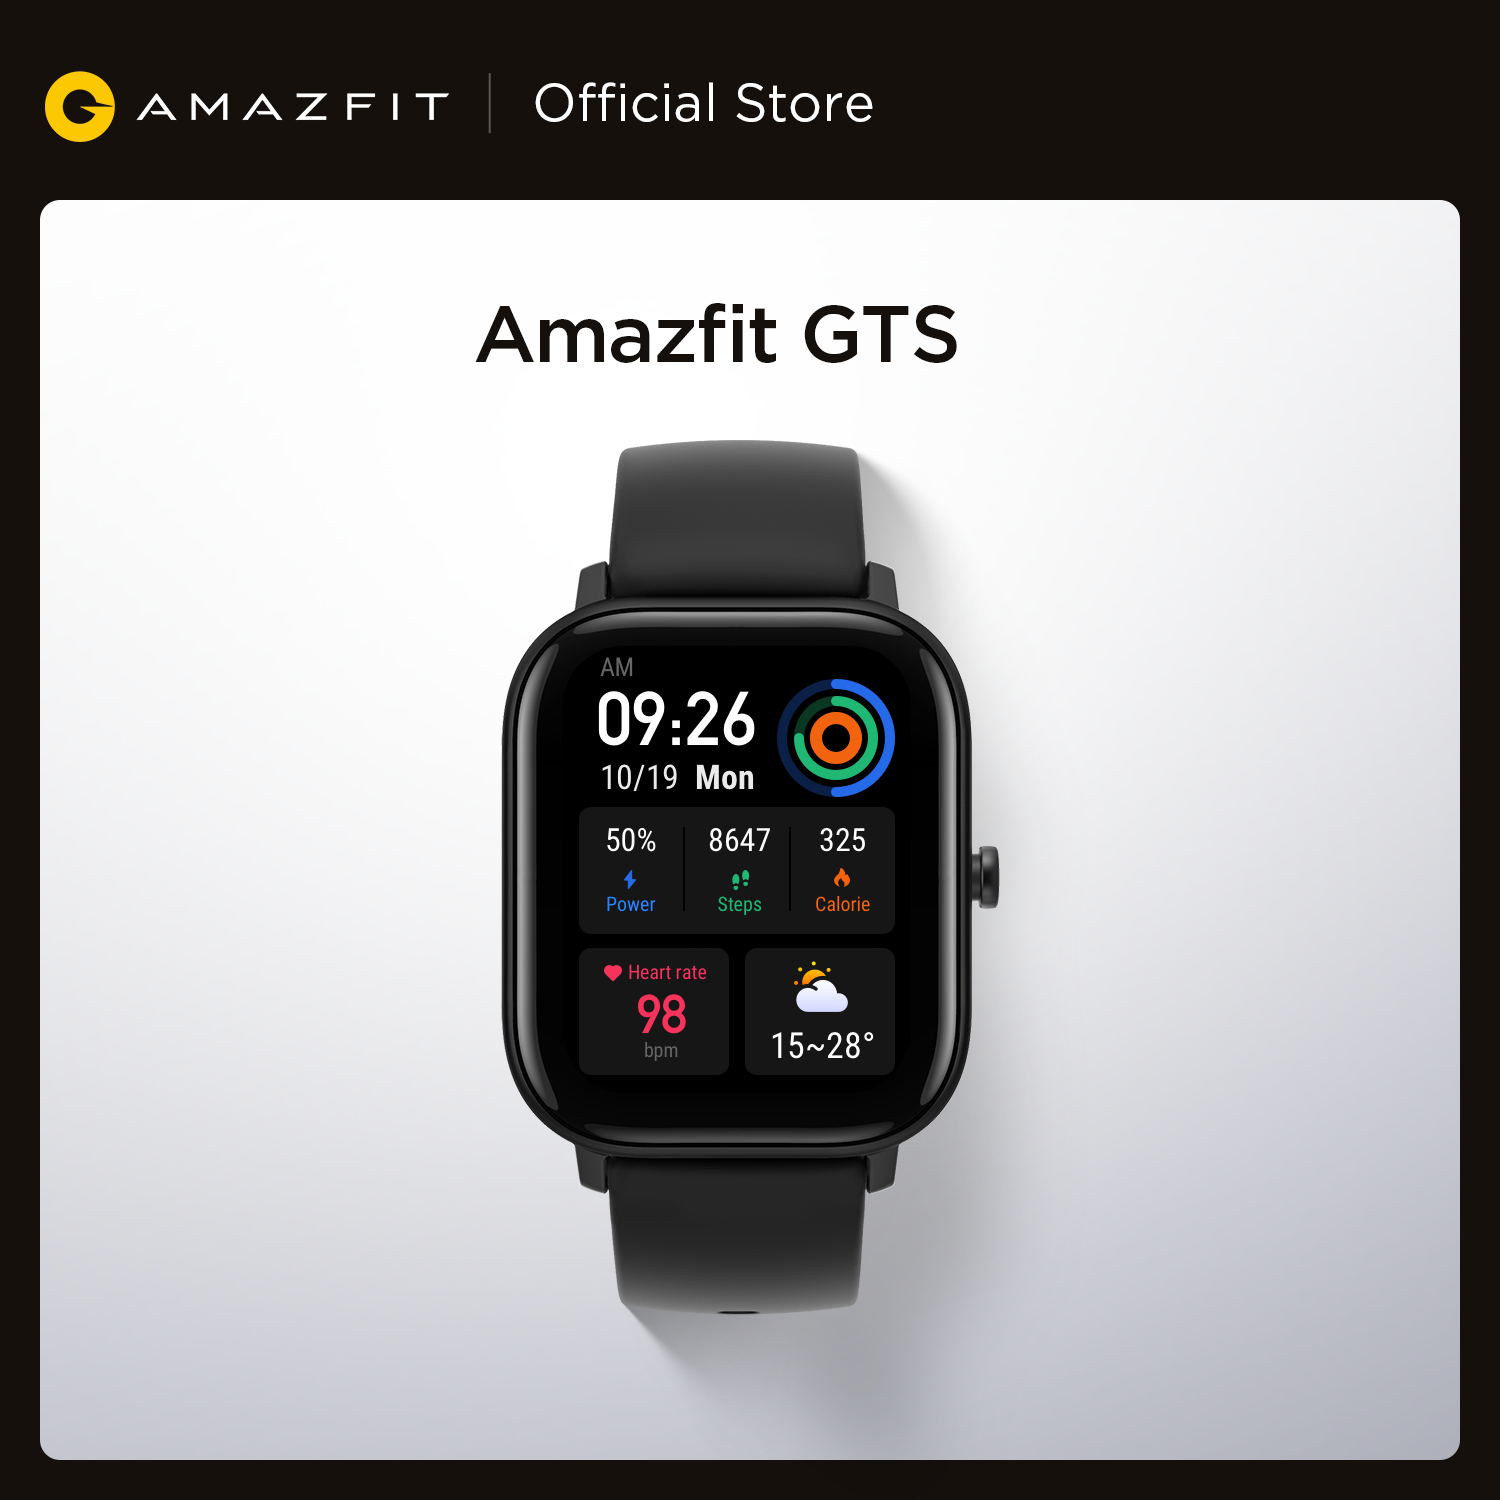 In stock Global Version Amazfit GTS Smart Watch 5ATM in Accra- Ghana 1